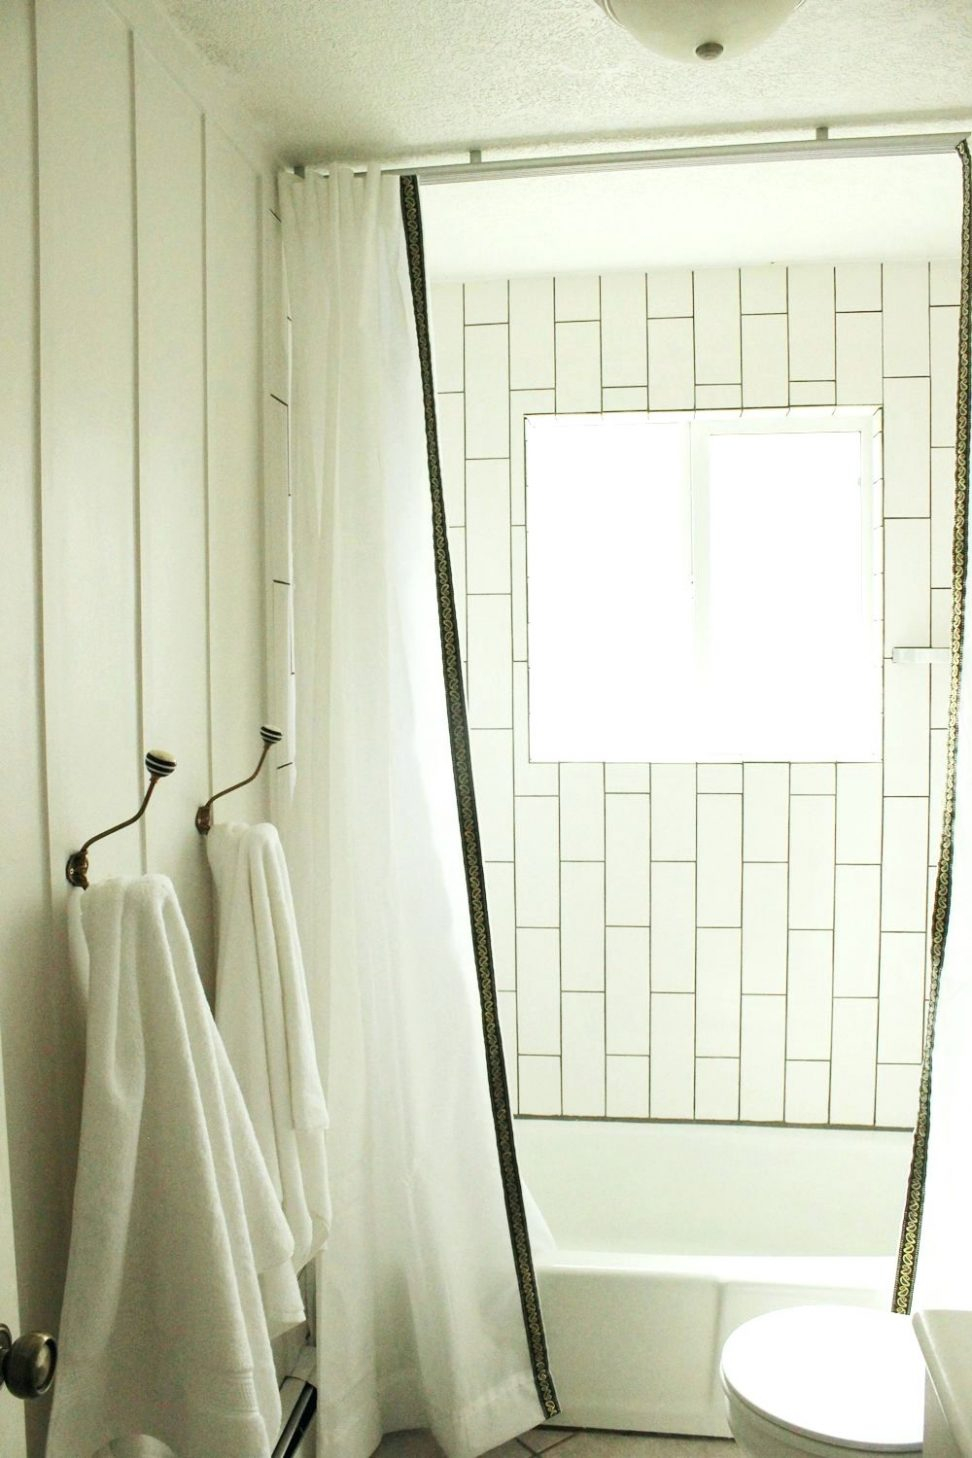 Shower Curtain Size For Garden Tub • Shower Curtains Ideas